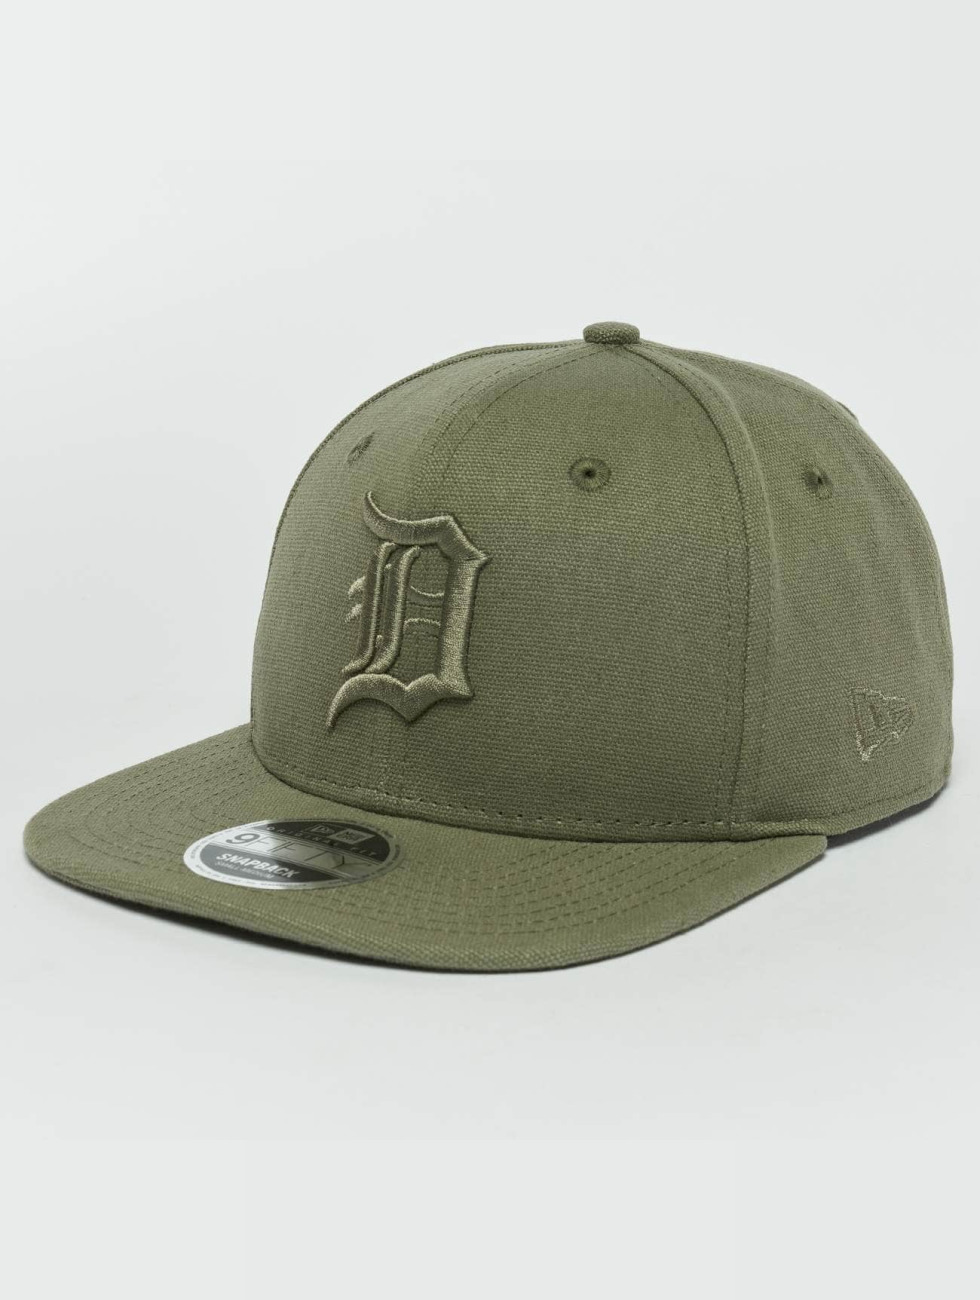 New Era Casquette Snapback & Strapback Canvas Detroit Tigers 9Fifty kaki